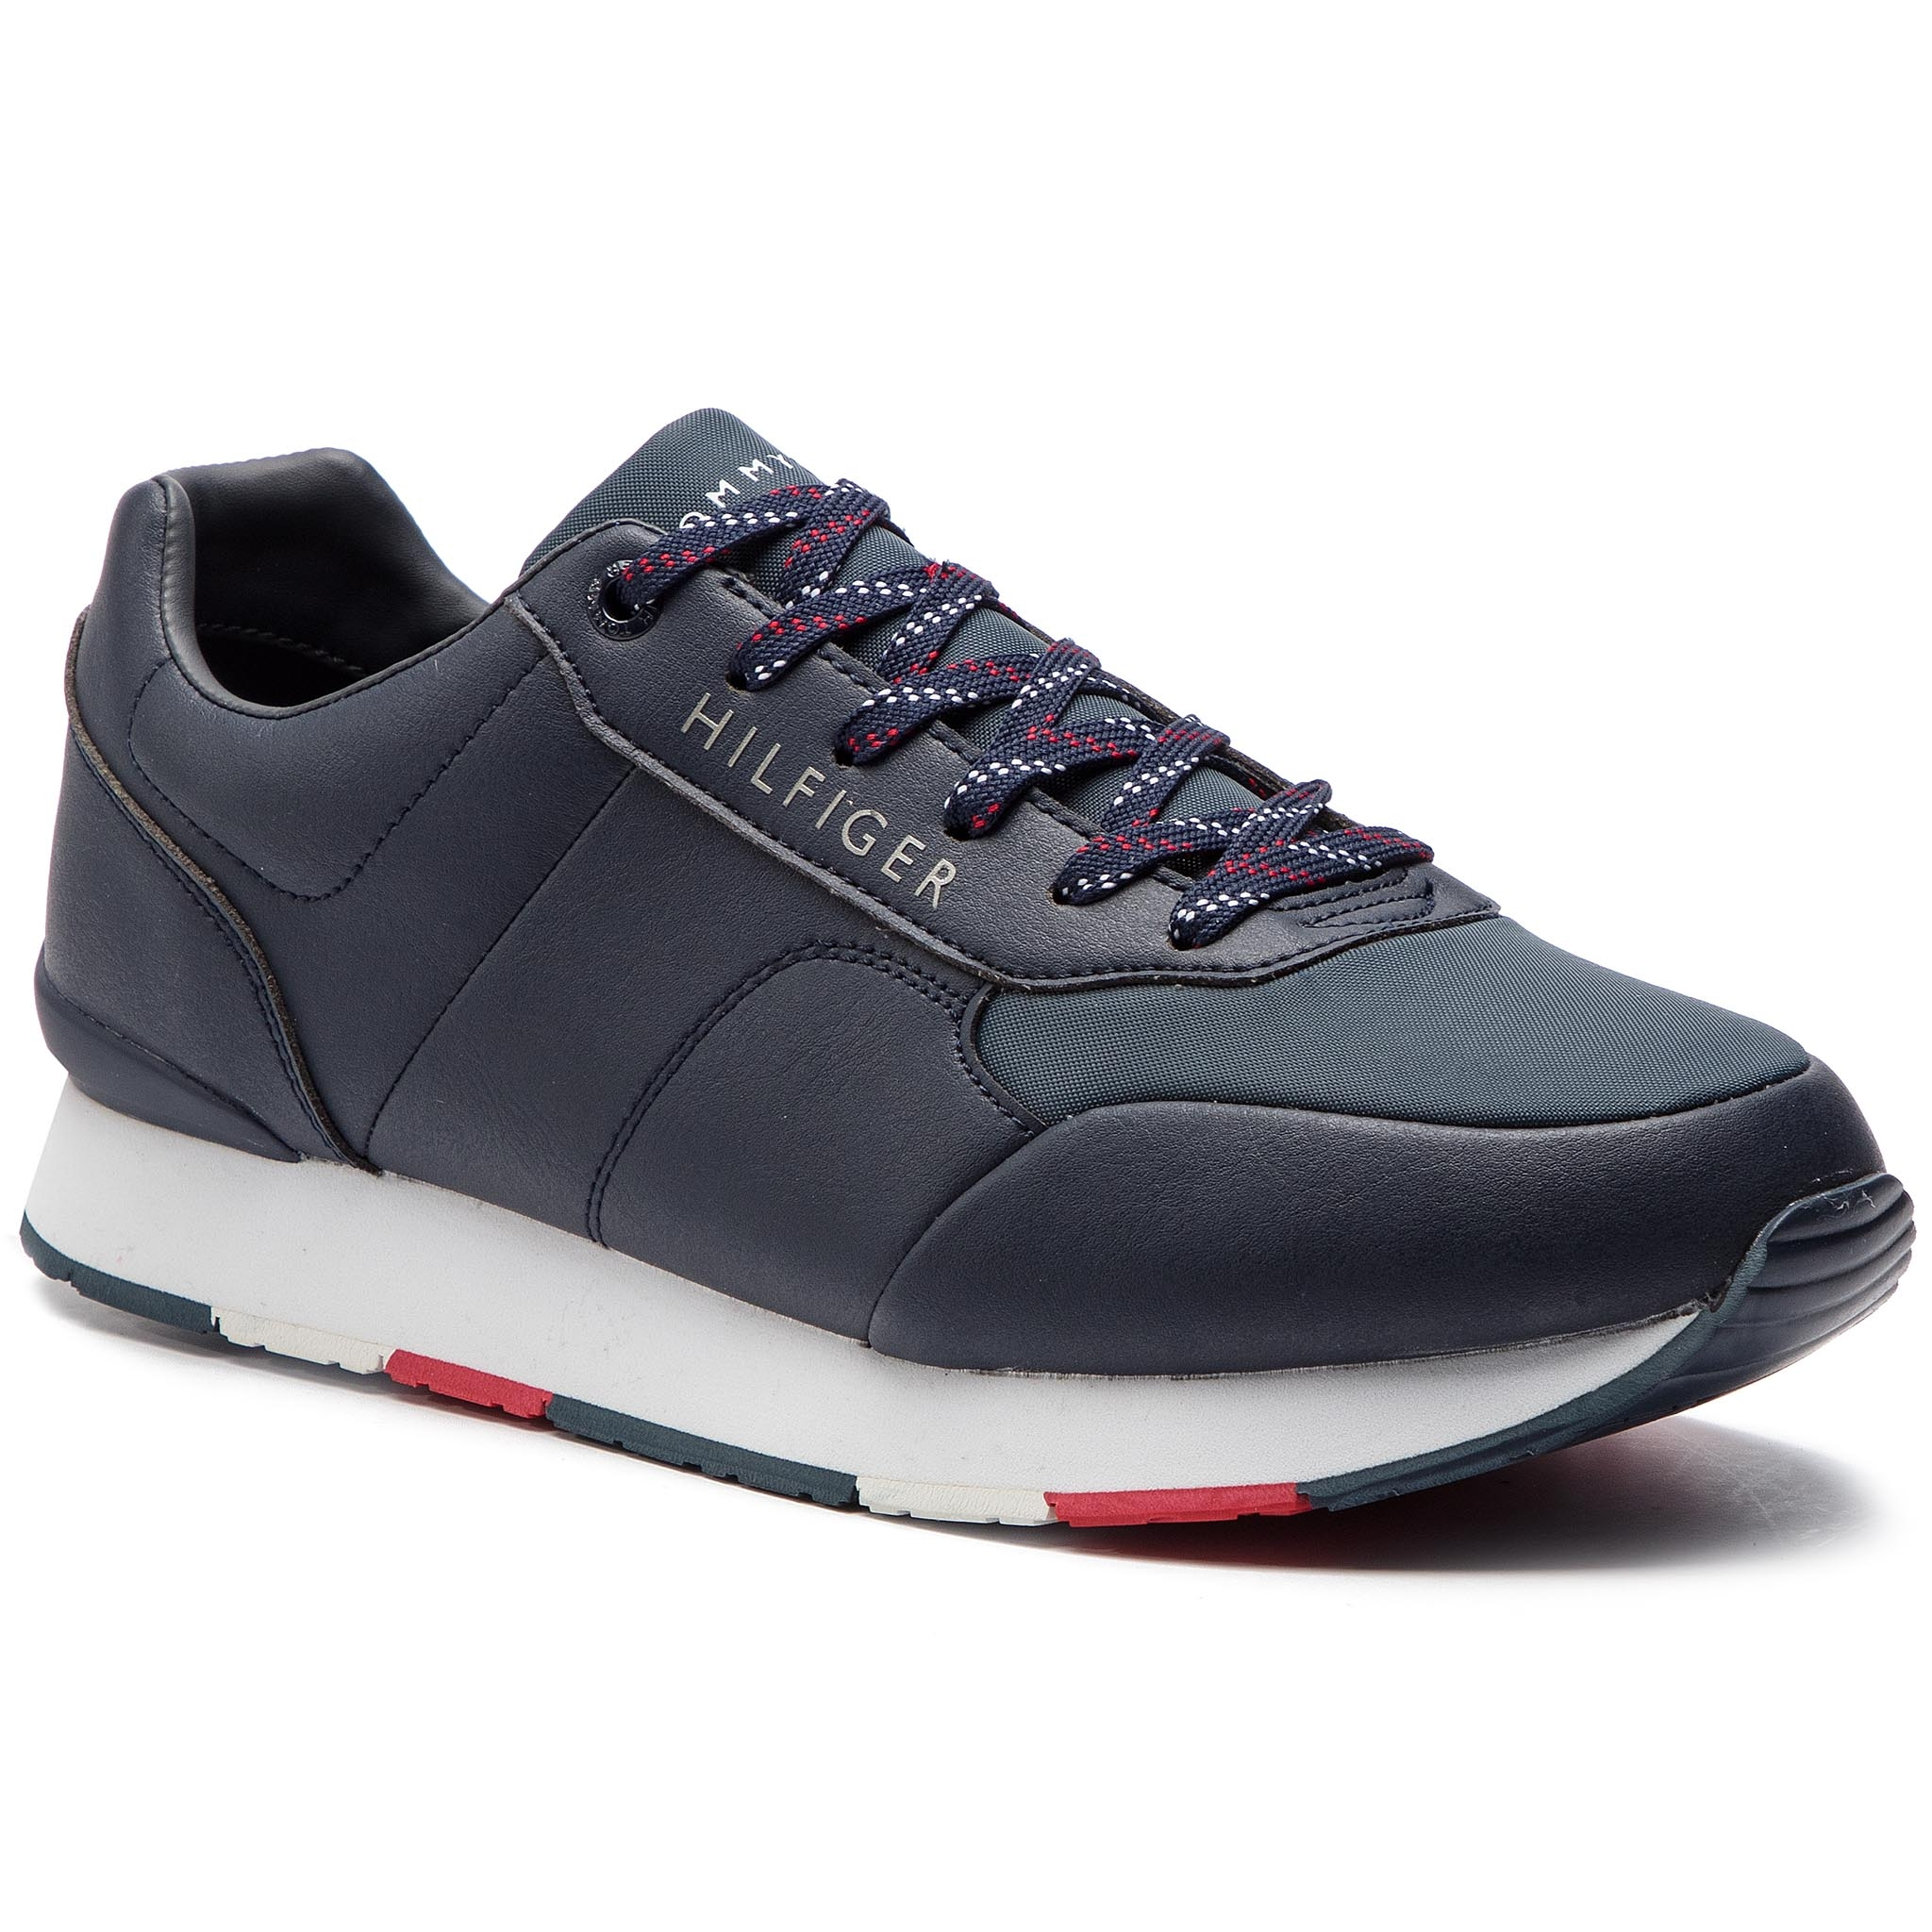 d12820639a Sportcipő TOMMY HILFIGER - Corporate Leather Runner FM0FM02057 ...